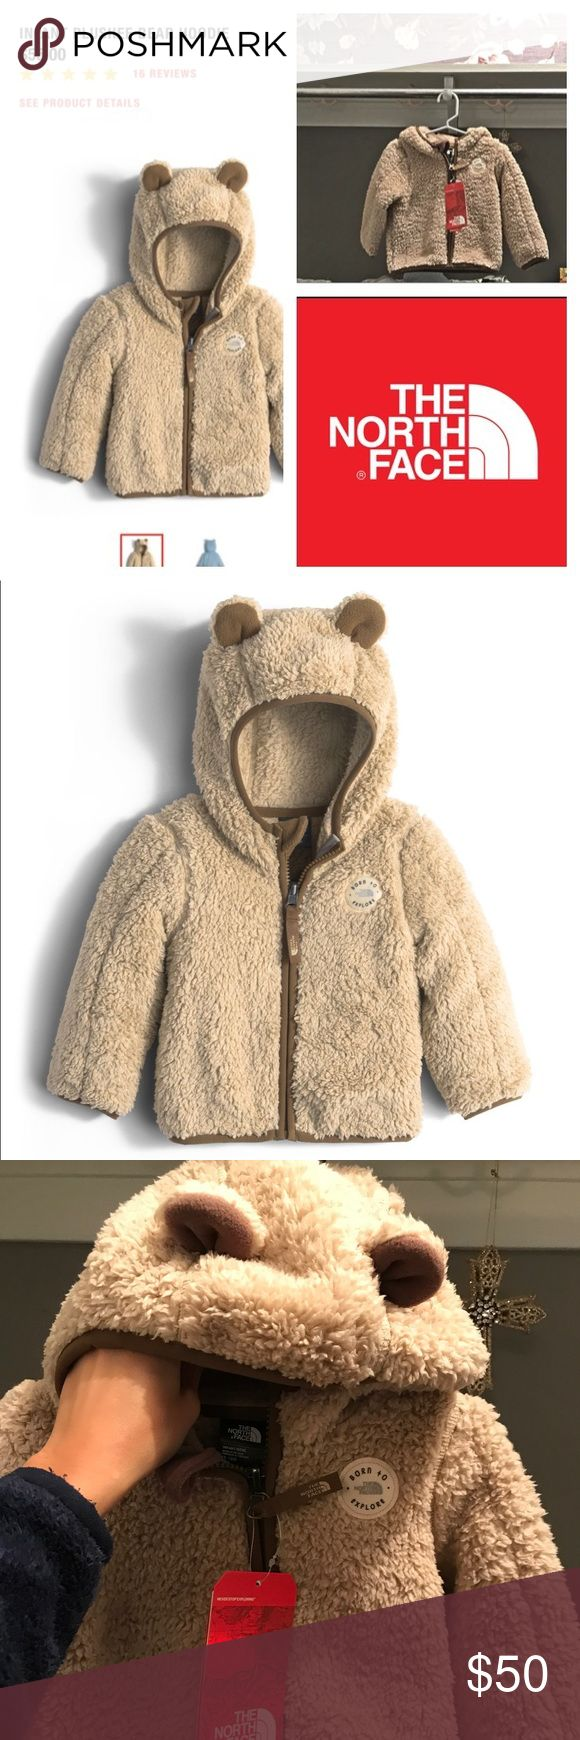 """North Face Infant Plushee Bear Hoodie Keep your wild child warmer with this soft fleece hoodie that's crafted with cozy hood finished with two bear ears.  Features :  •Warm, soft fleece hoodie with bear ears •Elastic binding on cuffs and hood •Novelty bear ears on lofty fleece side •Patch logo on front  Product Specifications:  STYLE: NF0A2TMV AVG WEIGHT: 210 g (7.4 oz) CENTER BACK: 12.25"""" FABRIC: 330 g/m² 100% polyester plushee fleece SOURCE: Imported GUARANTEE: Lifetime Warranty CARE…"""